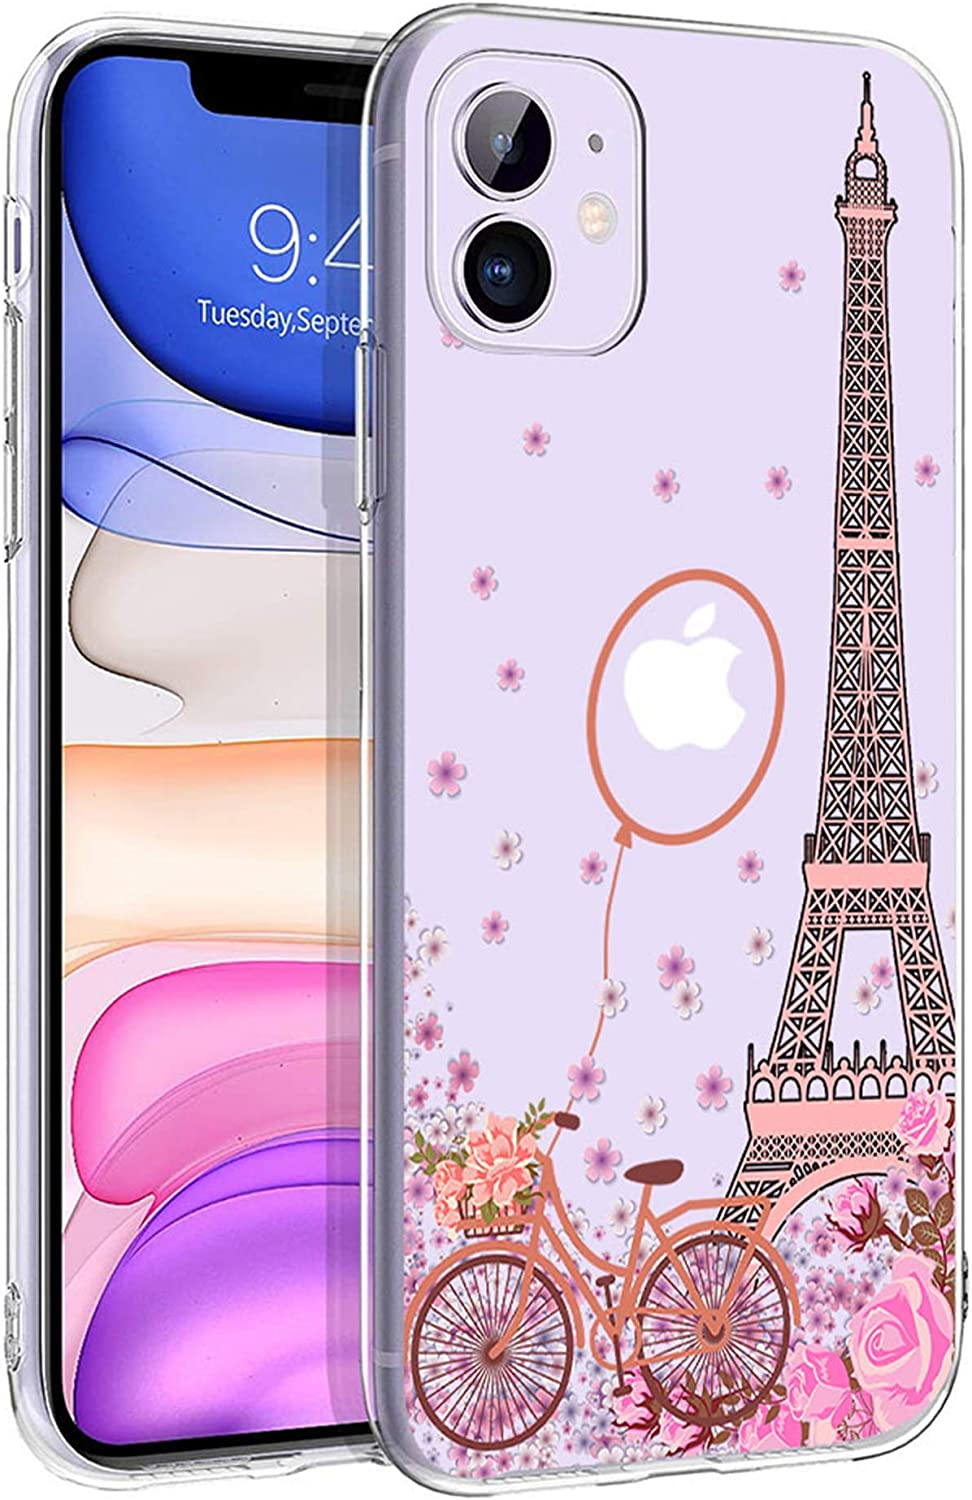 Cocomong Clear Paris Eiffel Tower Cute Phone Case Compatible with iPhone 11 Case Paris Cover for iPhone 11 Case for Girls Women Pink Flower Paris Decor Gifts, Soft Slim Fit Thin TPU Protective 6.1